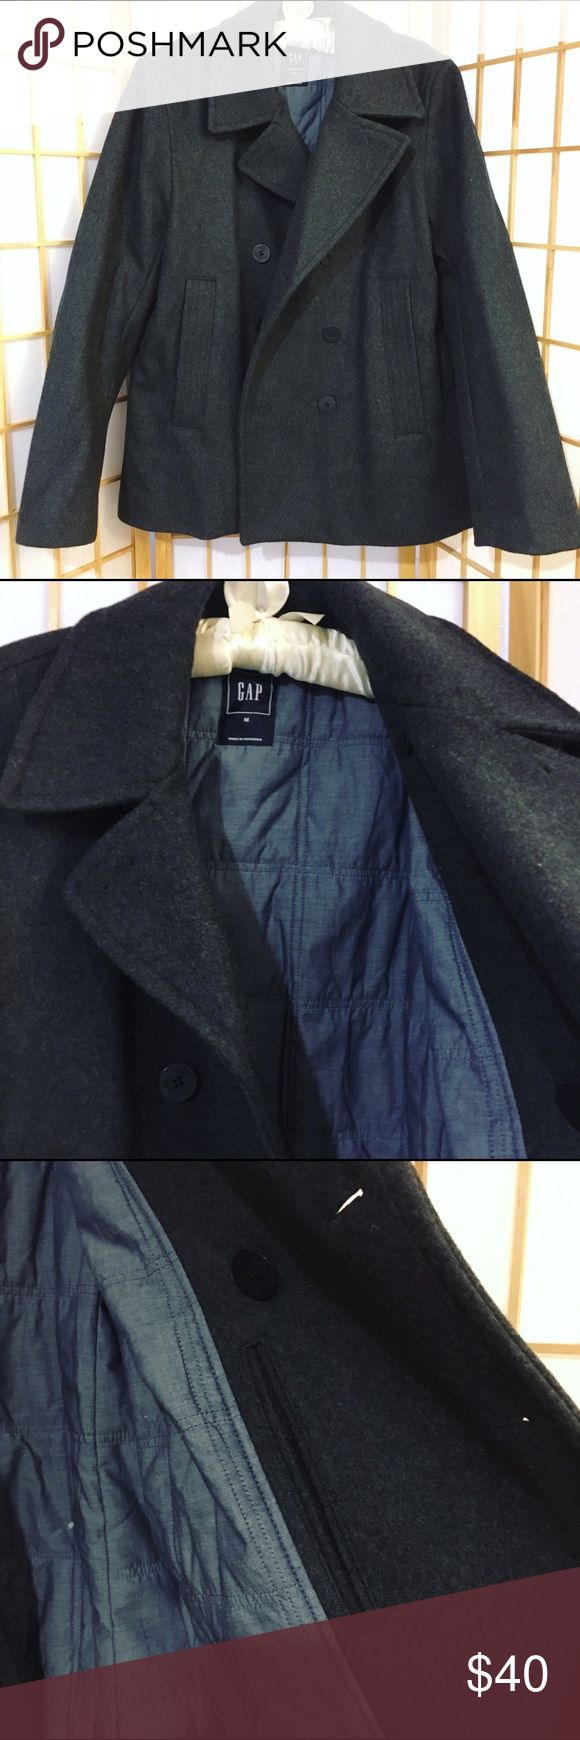 Gap Men's peacoat NWOT Gap men's peacoat in dark gray. We live in FL and although it gets cold it's never cold enough for my husband to wear this peacoat I got him. It's true to size and even comes with a secret pocket (for secret snacks?) 😍💋 GAP Jackets & Coats Pea Coats